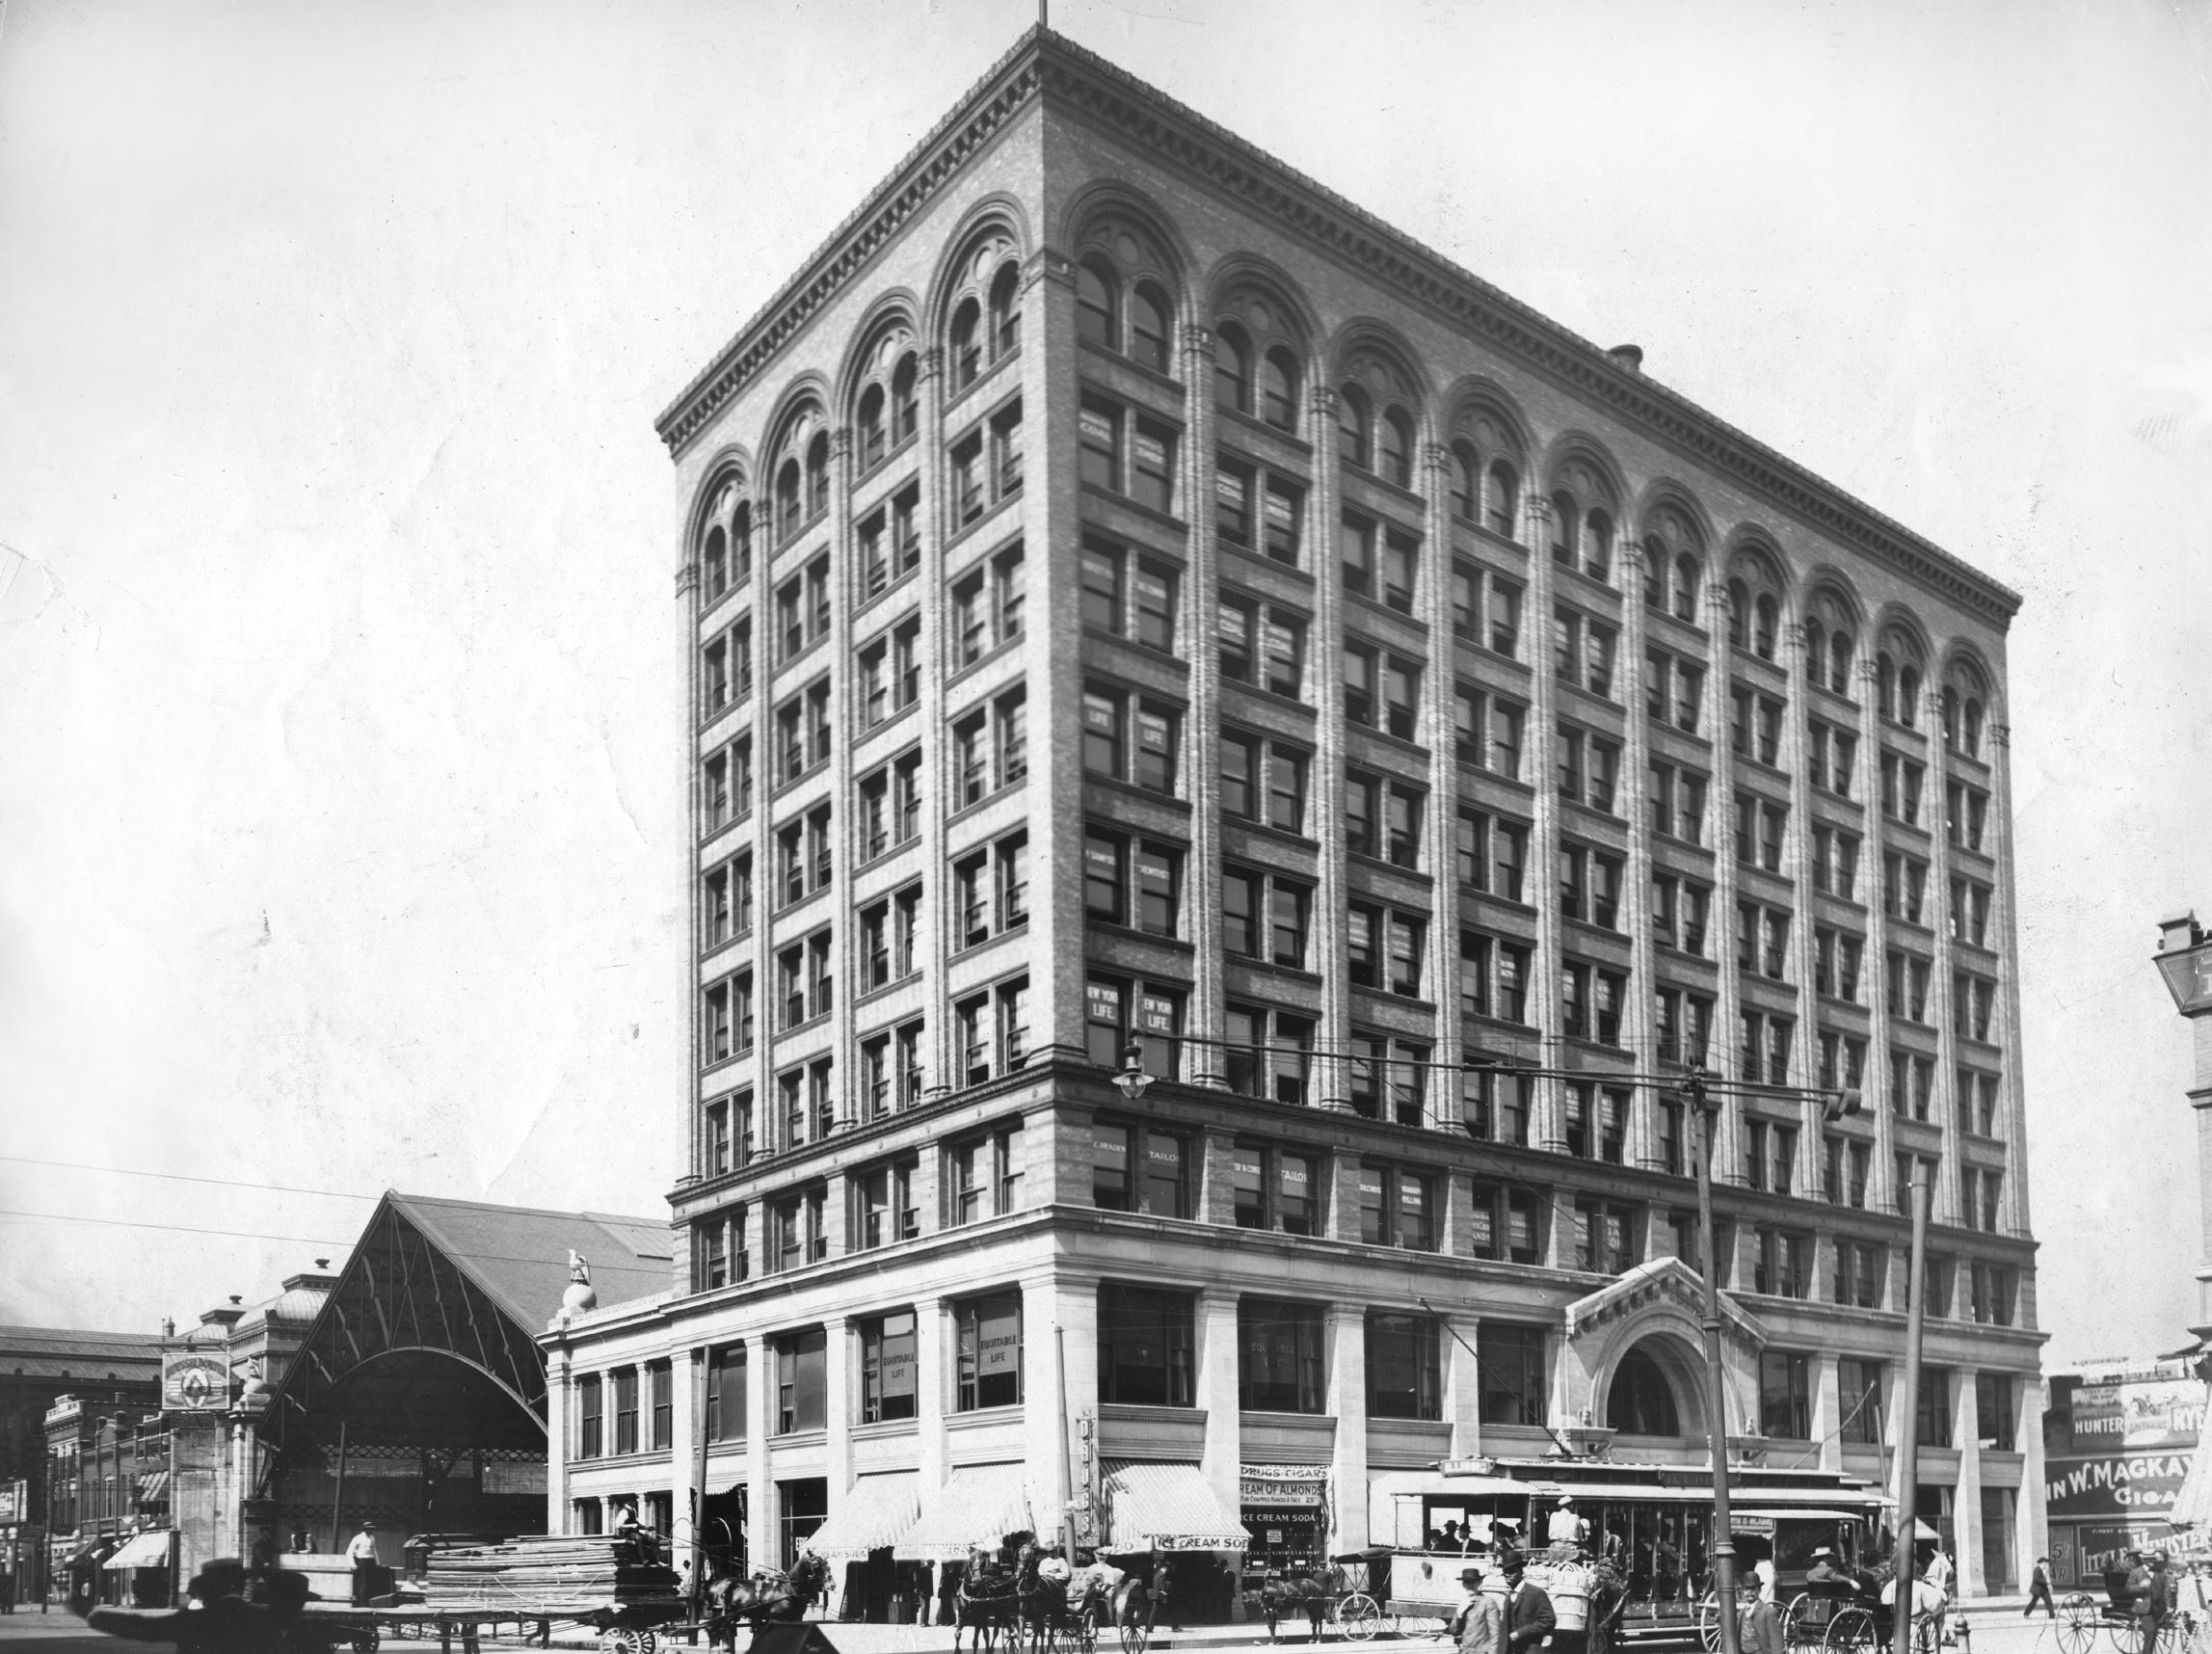 Indianapolis Terminal Building at right and the Terminal Station to the left in 1918 at the northwest corner of Illinois and Market.  When it was built in 1904, the Indianapolis Traction Terminal was the largest interurban station in the world.  The first interurban train entered Indianapolis in 1900 and by 1910, the station was handling nearly 400 trains a day.  Traction Terminal housed nine tracks and also served the Indianapolis streetcar system, allowing for easy transfers between the interurbans and local streetcars.